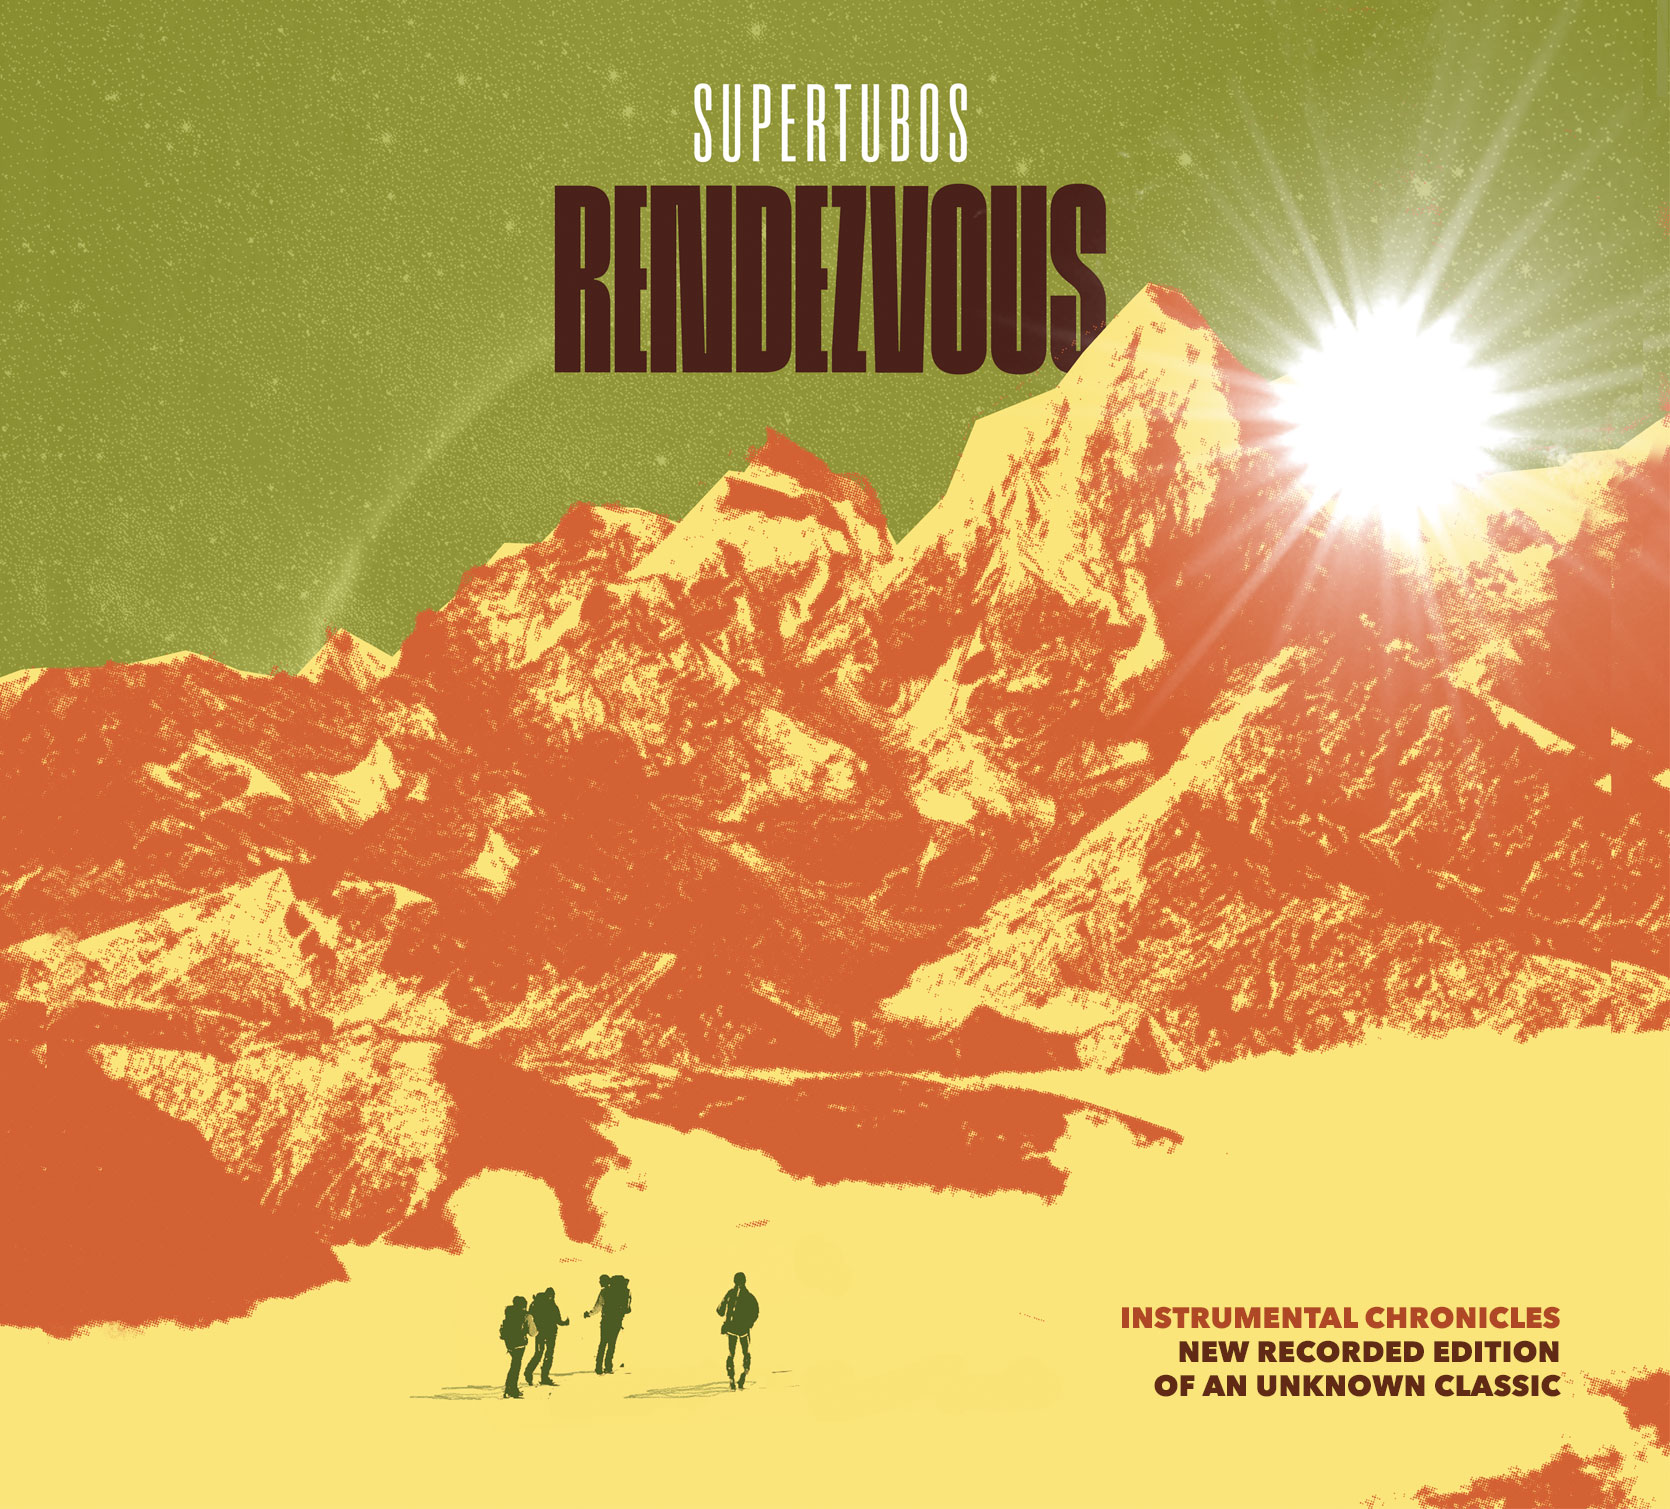 SRW016 Supertubos - Rendezvous (Digital Download) Image